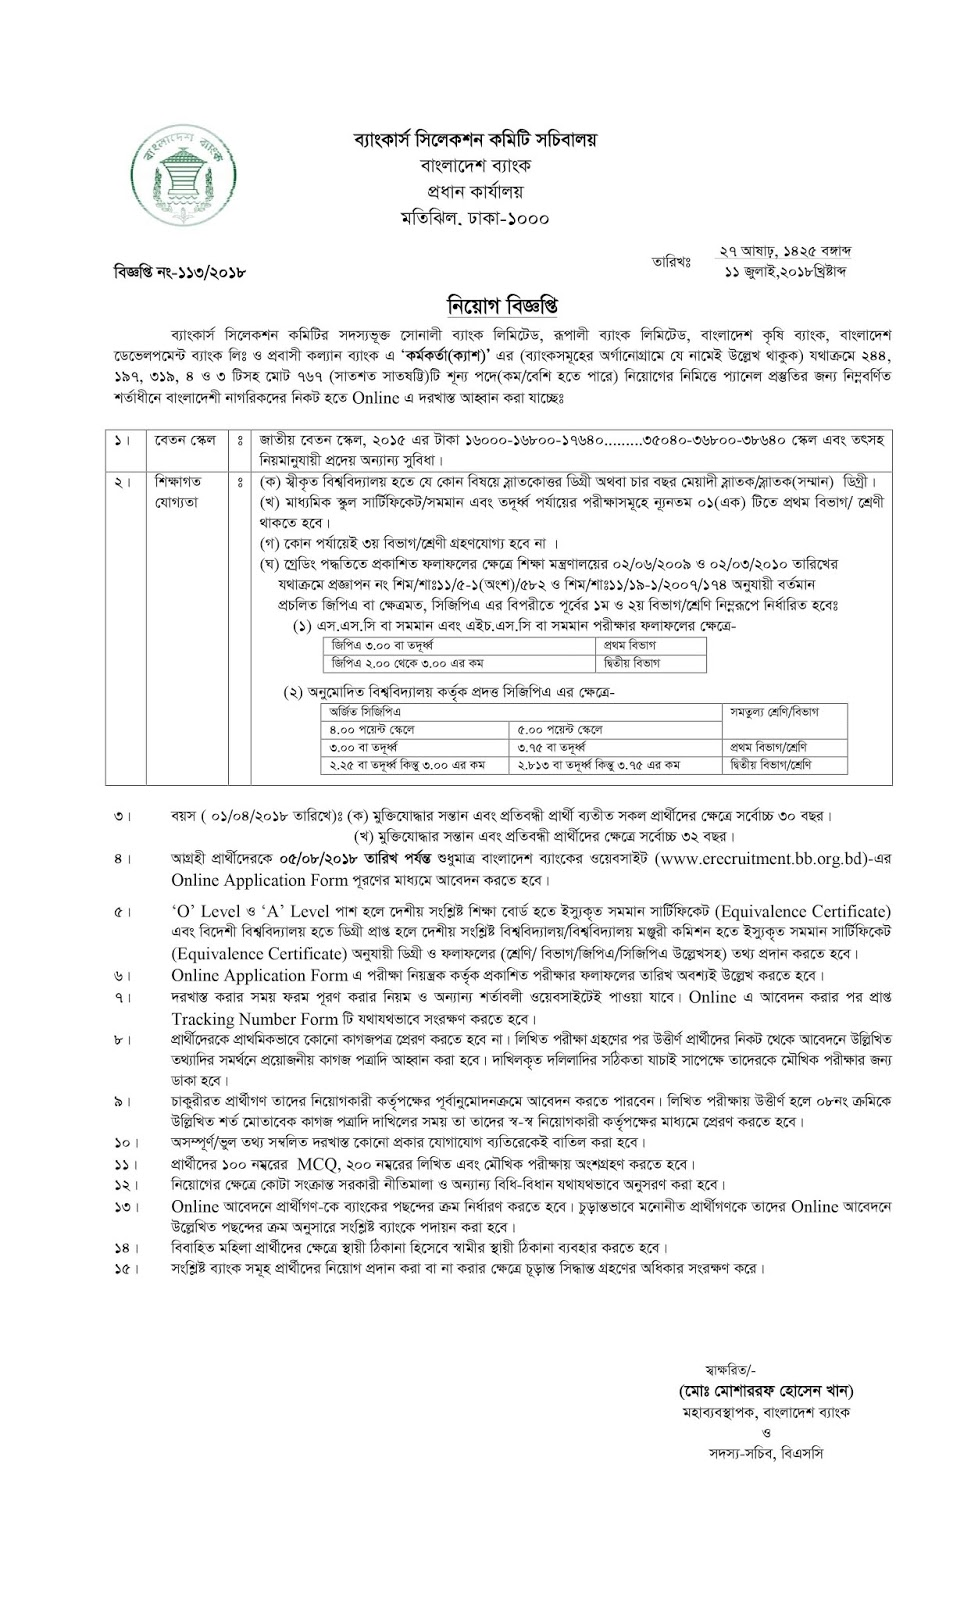 Sonali Bank Limited (SBL) Officer (Cash) Job Circular 2018